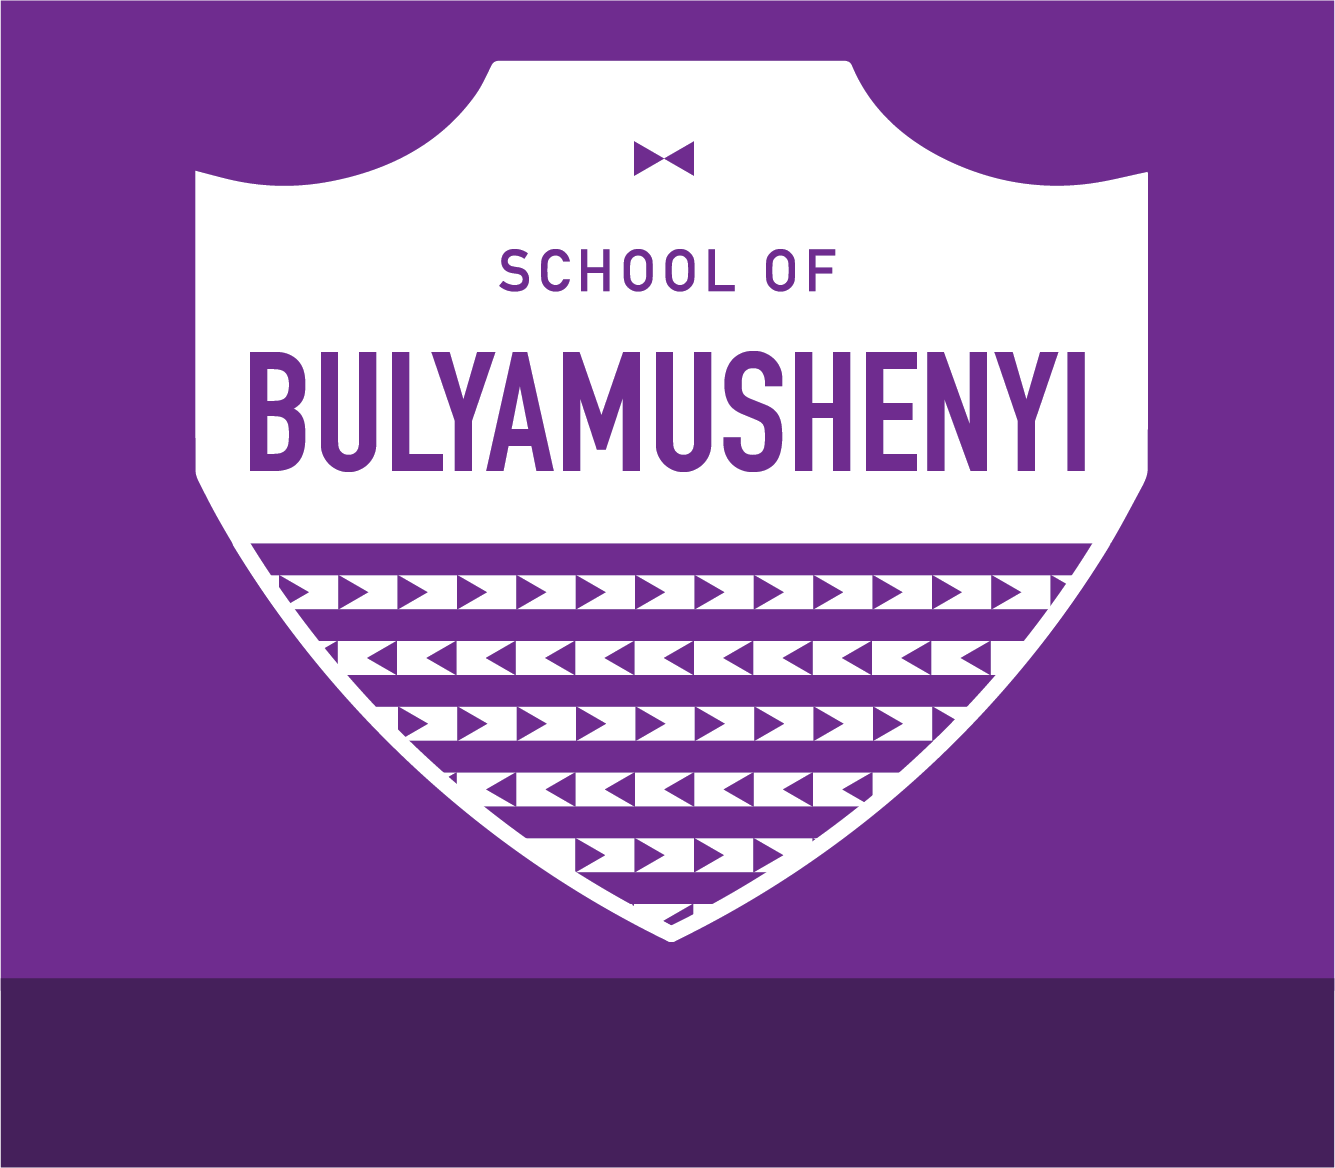 School of bulyamushenyi